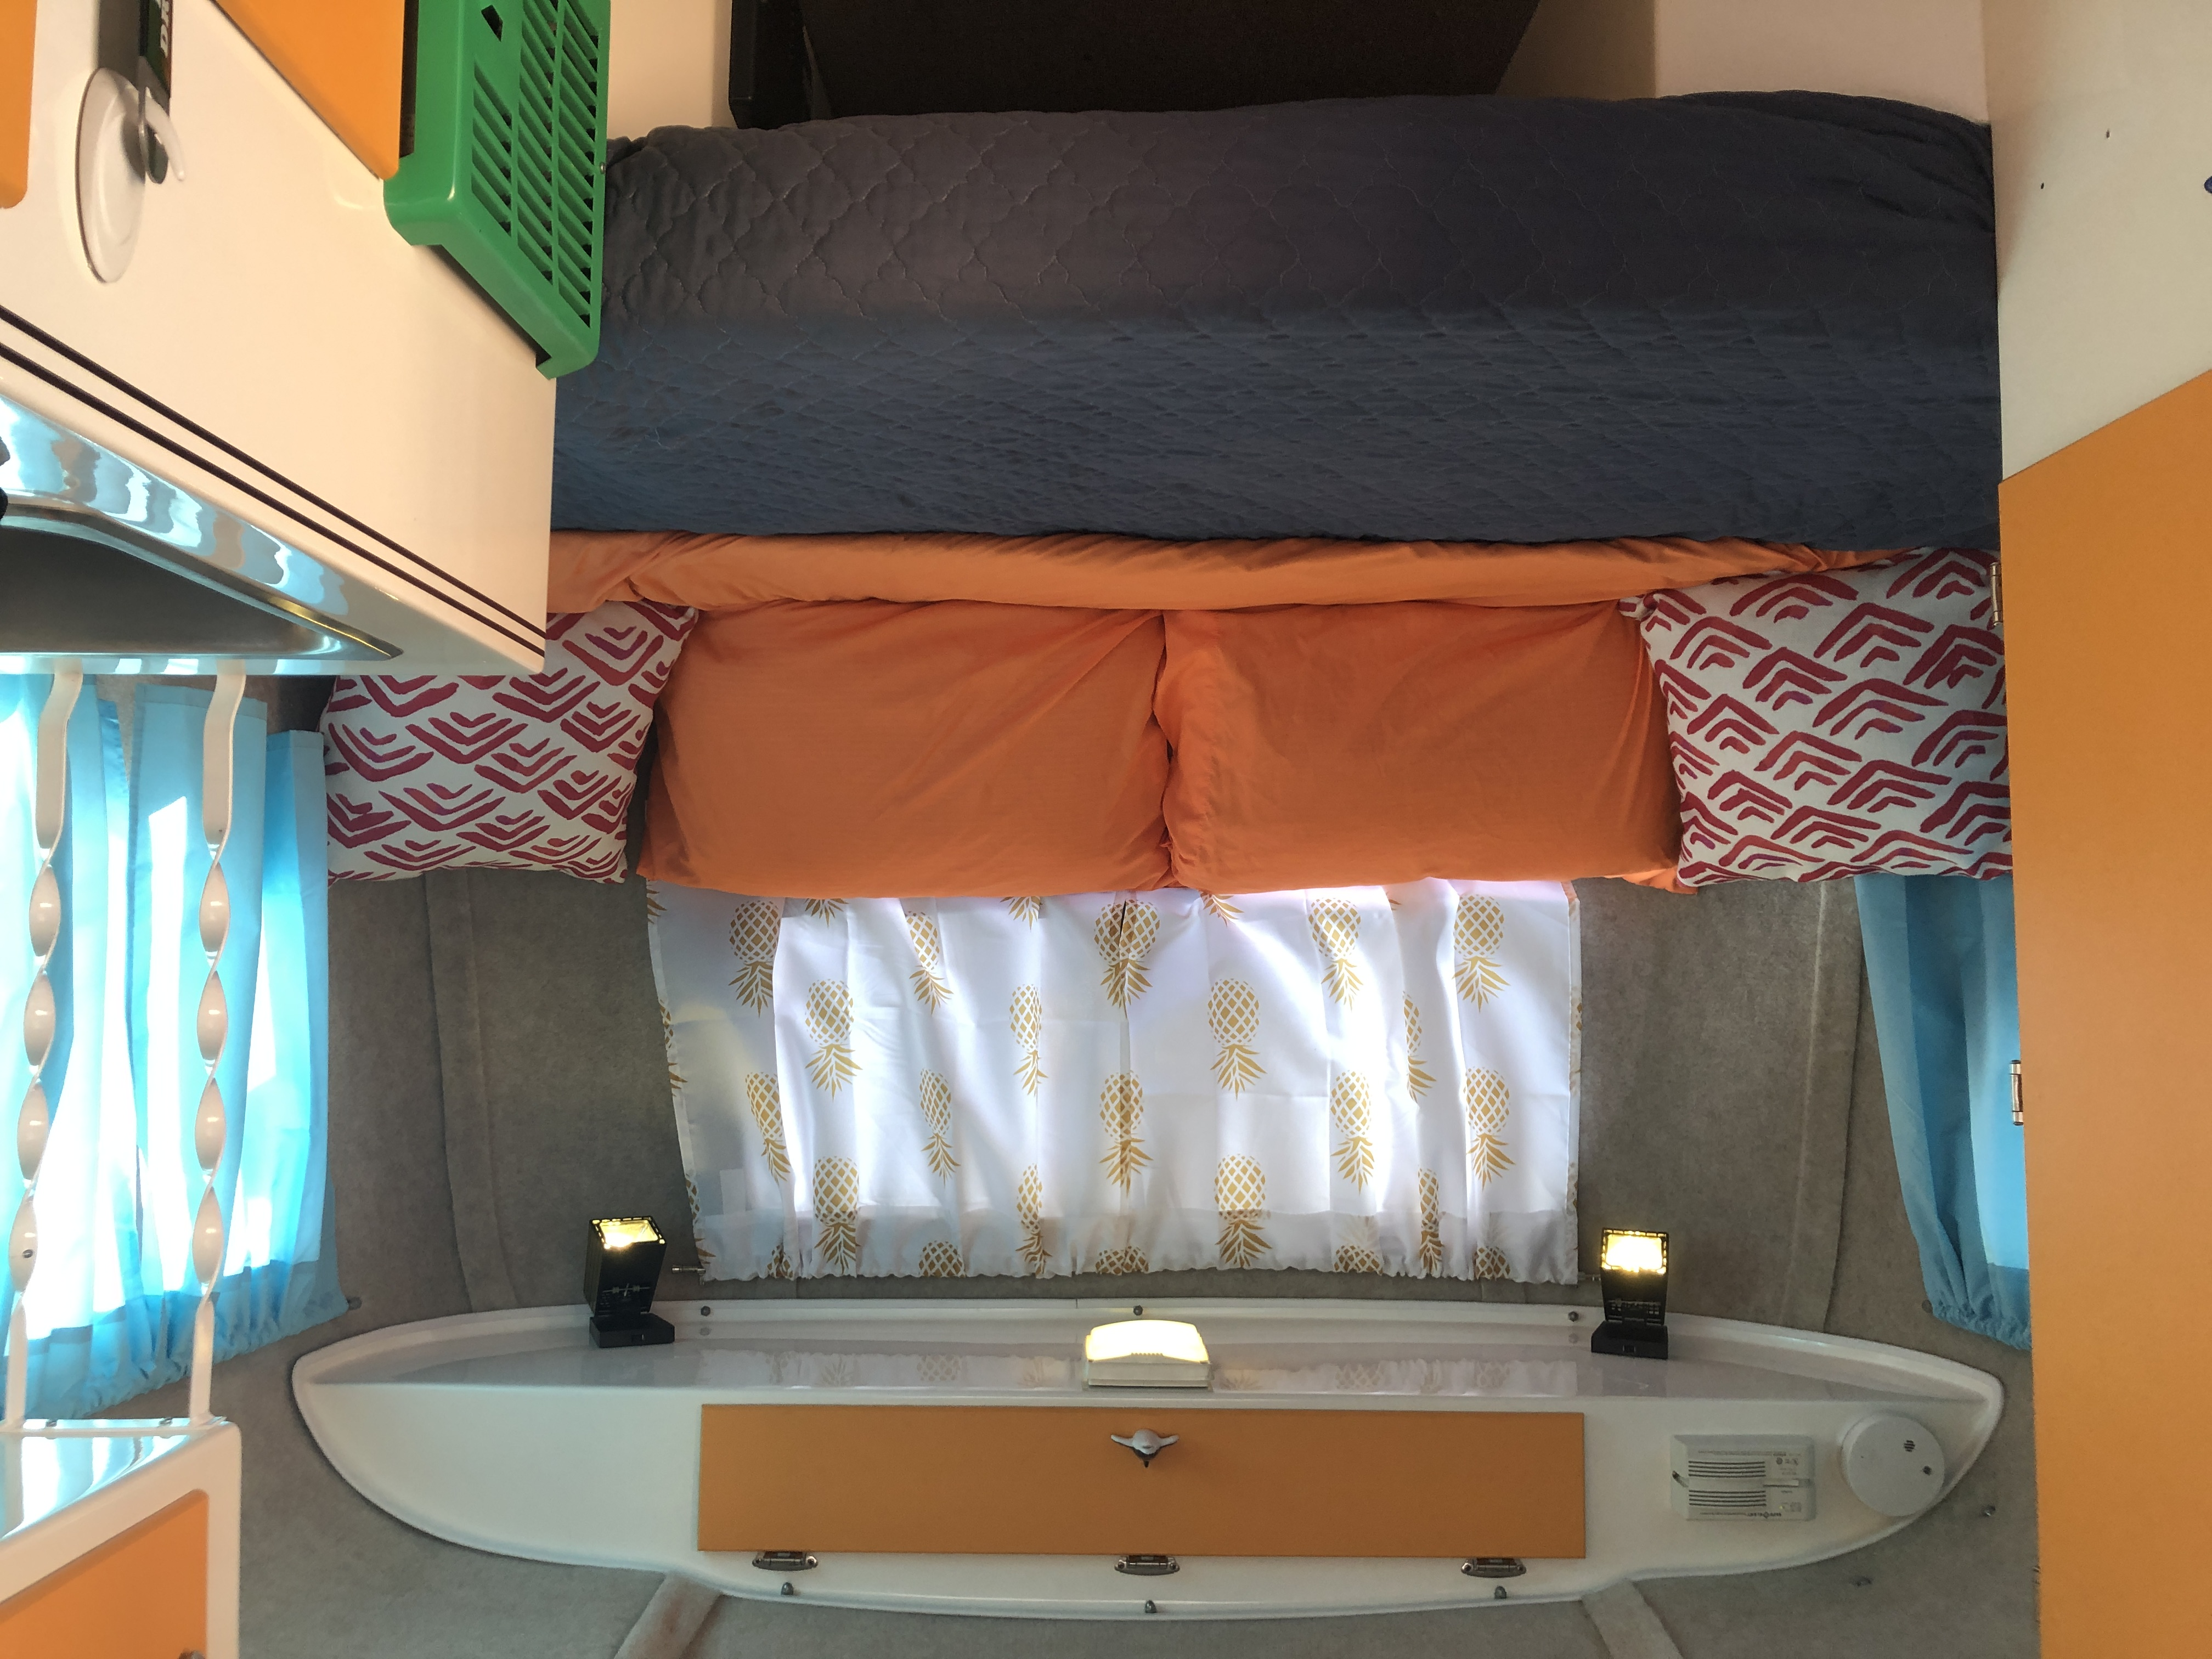 dinette turns into double bed. Scamp 13' 2005